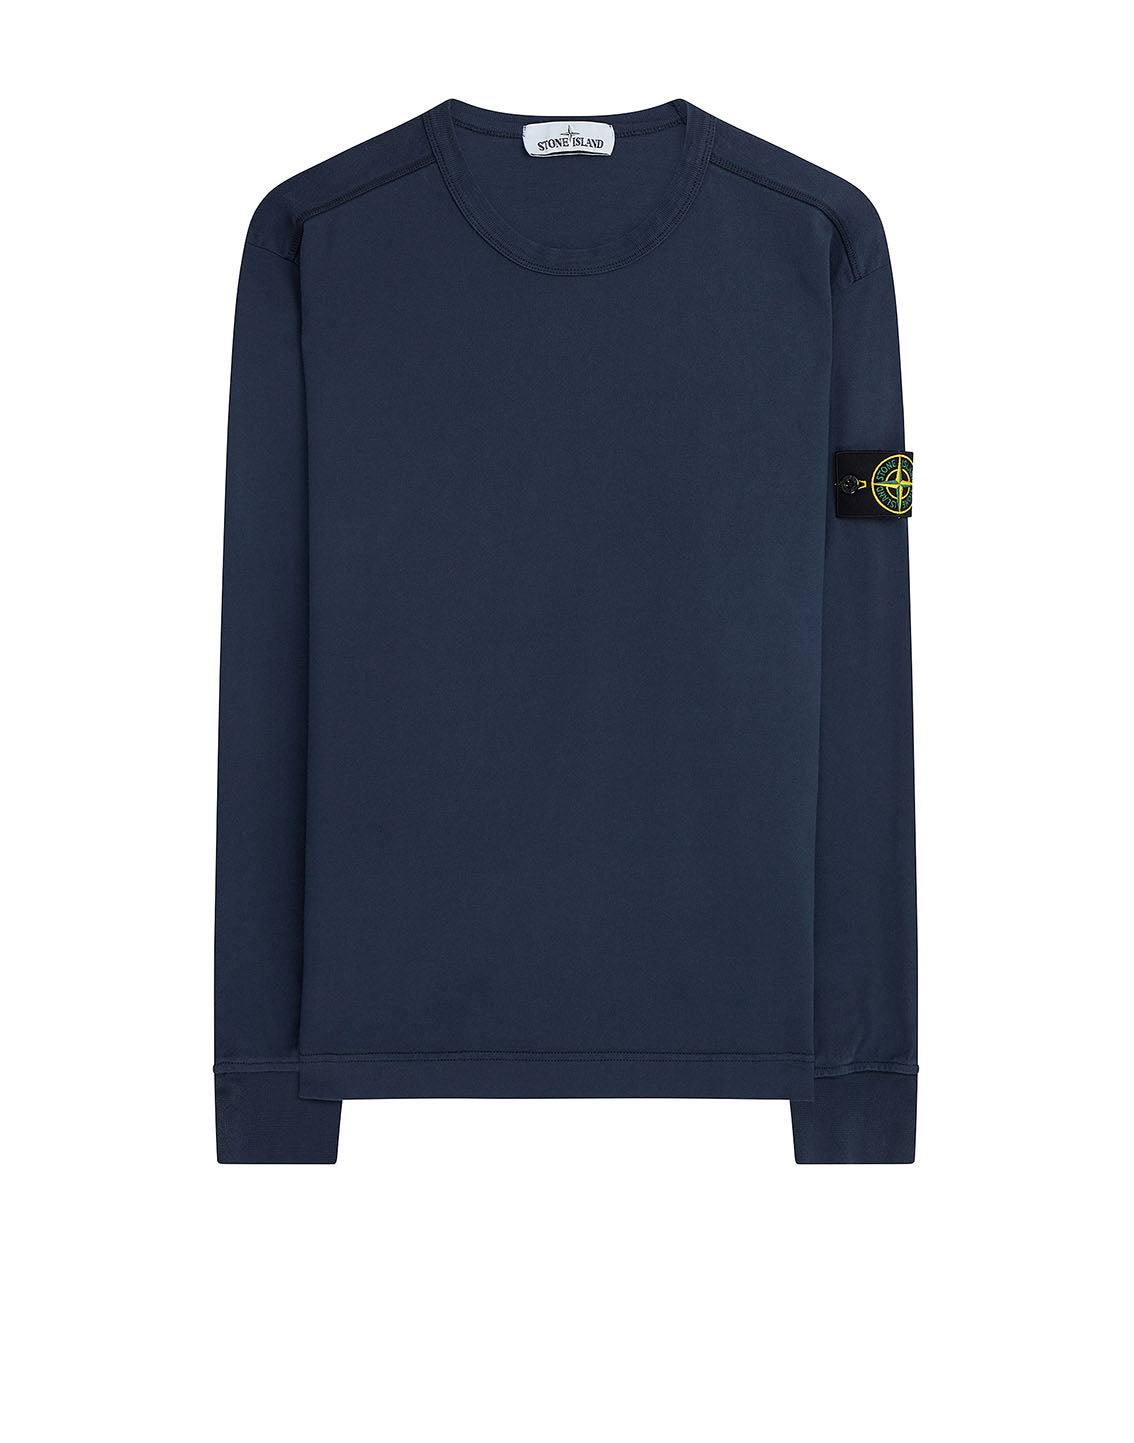 64450 Sweatshirt in Blue Marine